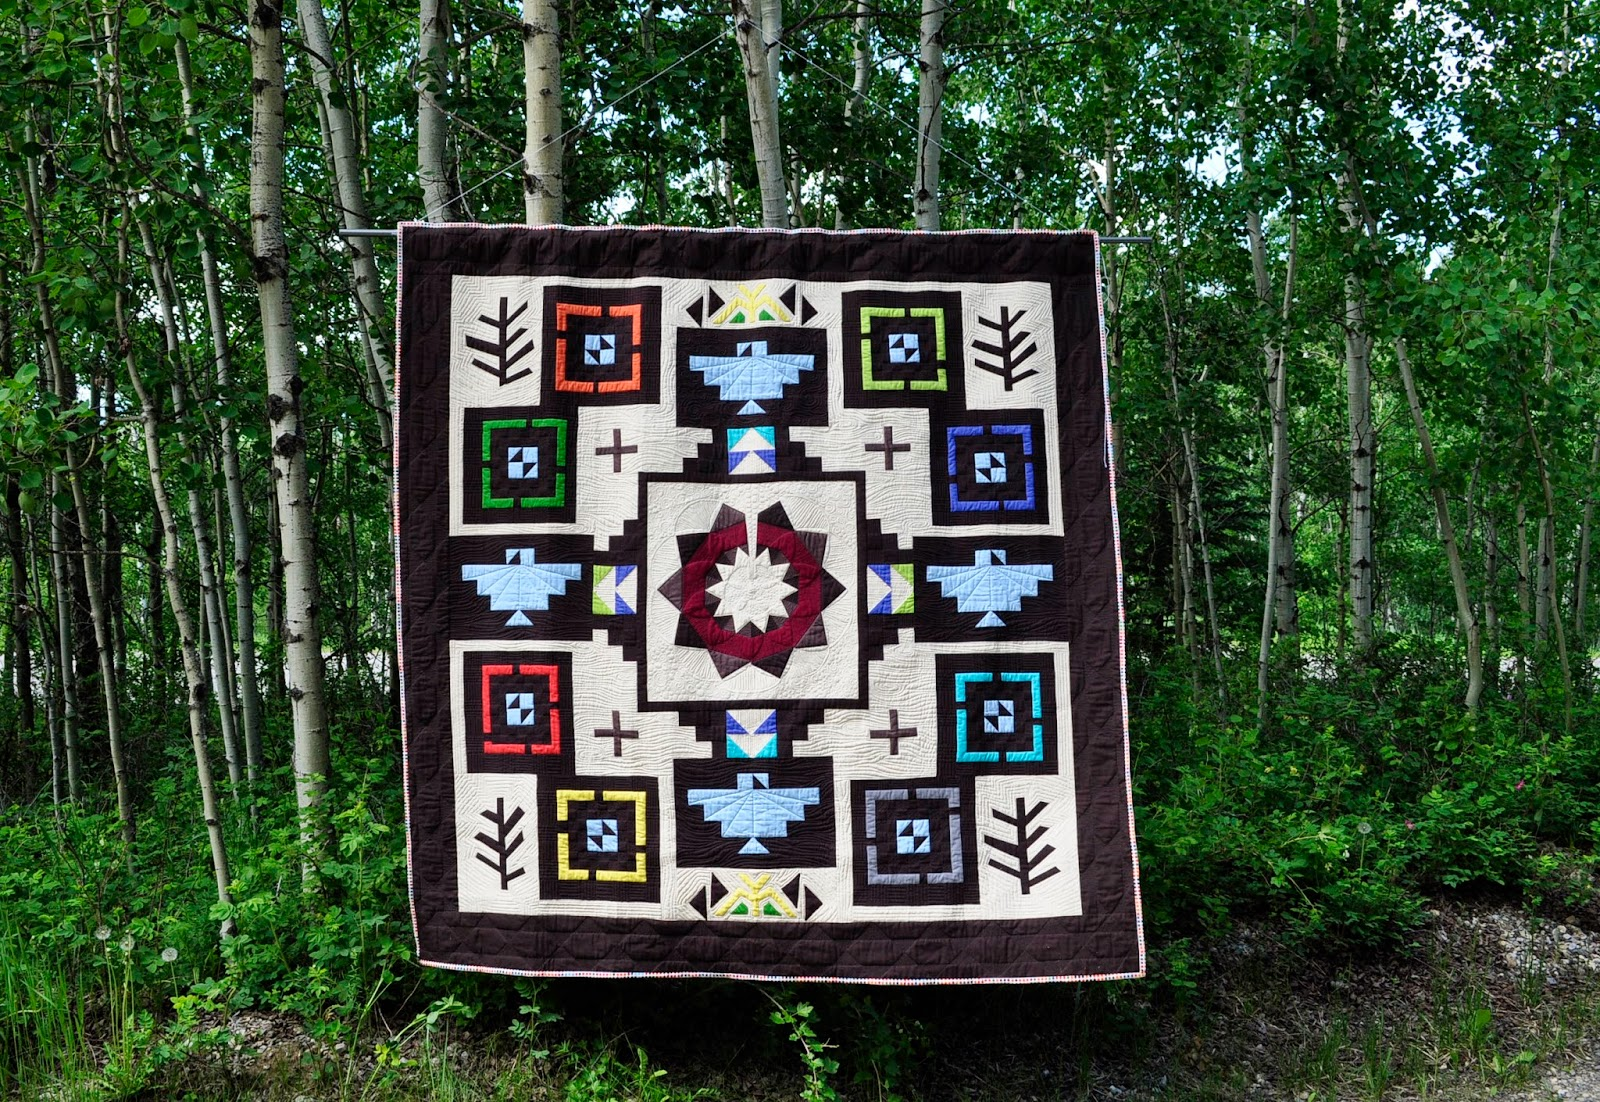 Tree of Life Quilt by Katrina Hertzer, Nizhoni Workshop (an original quilt)